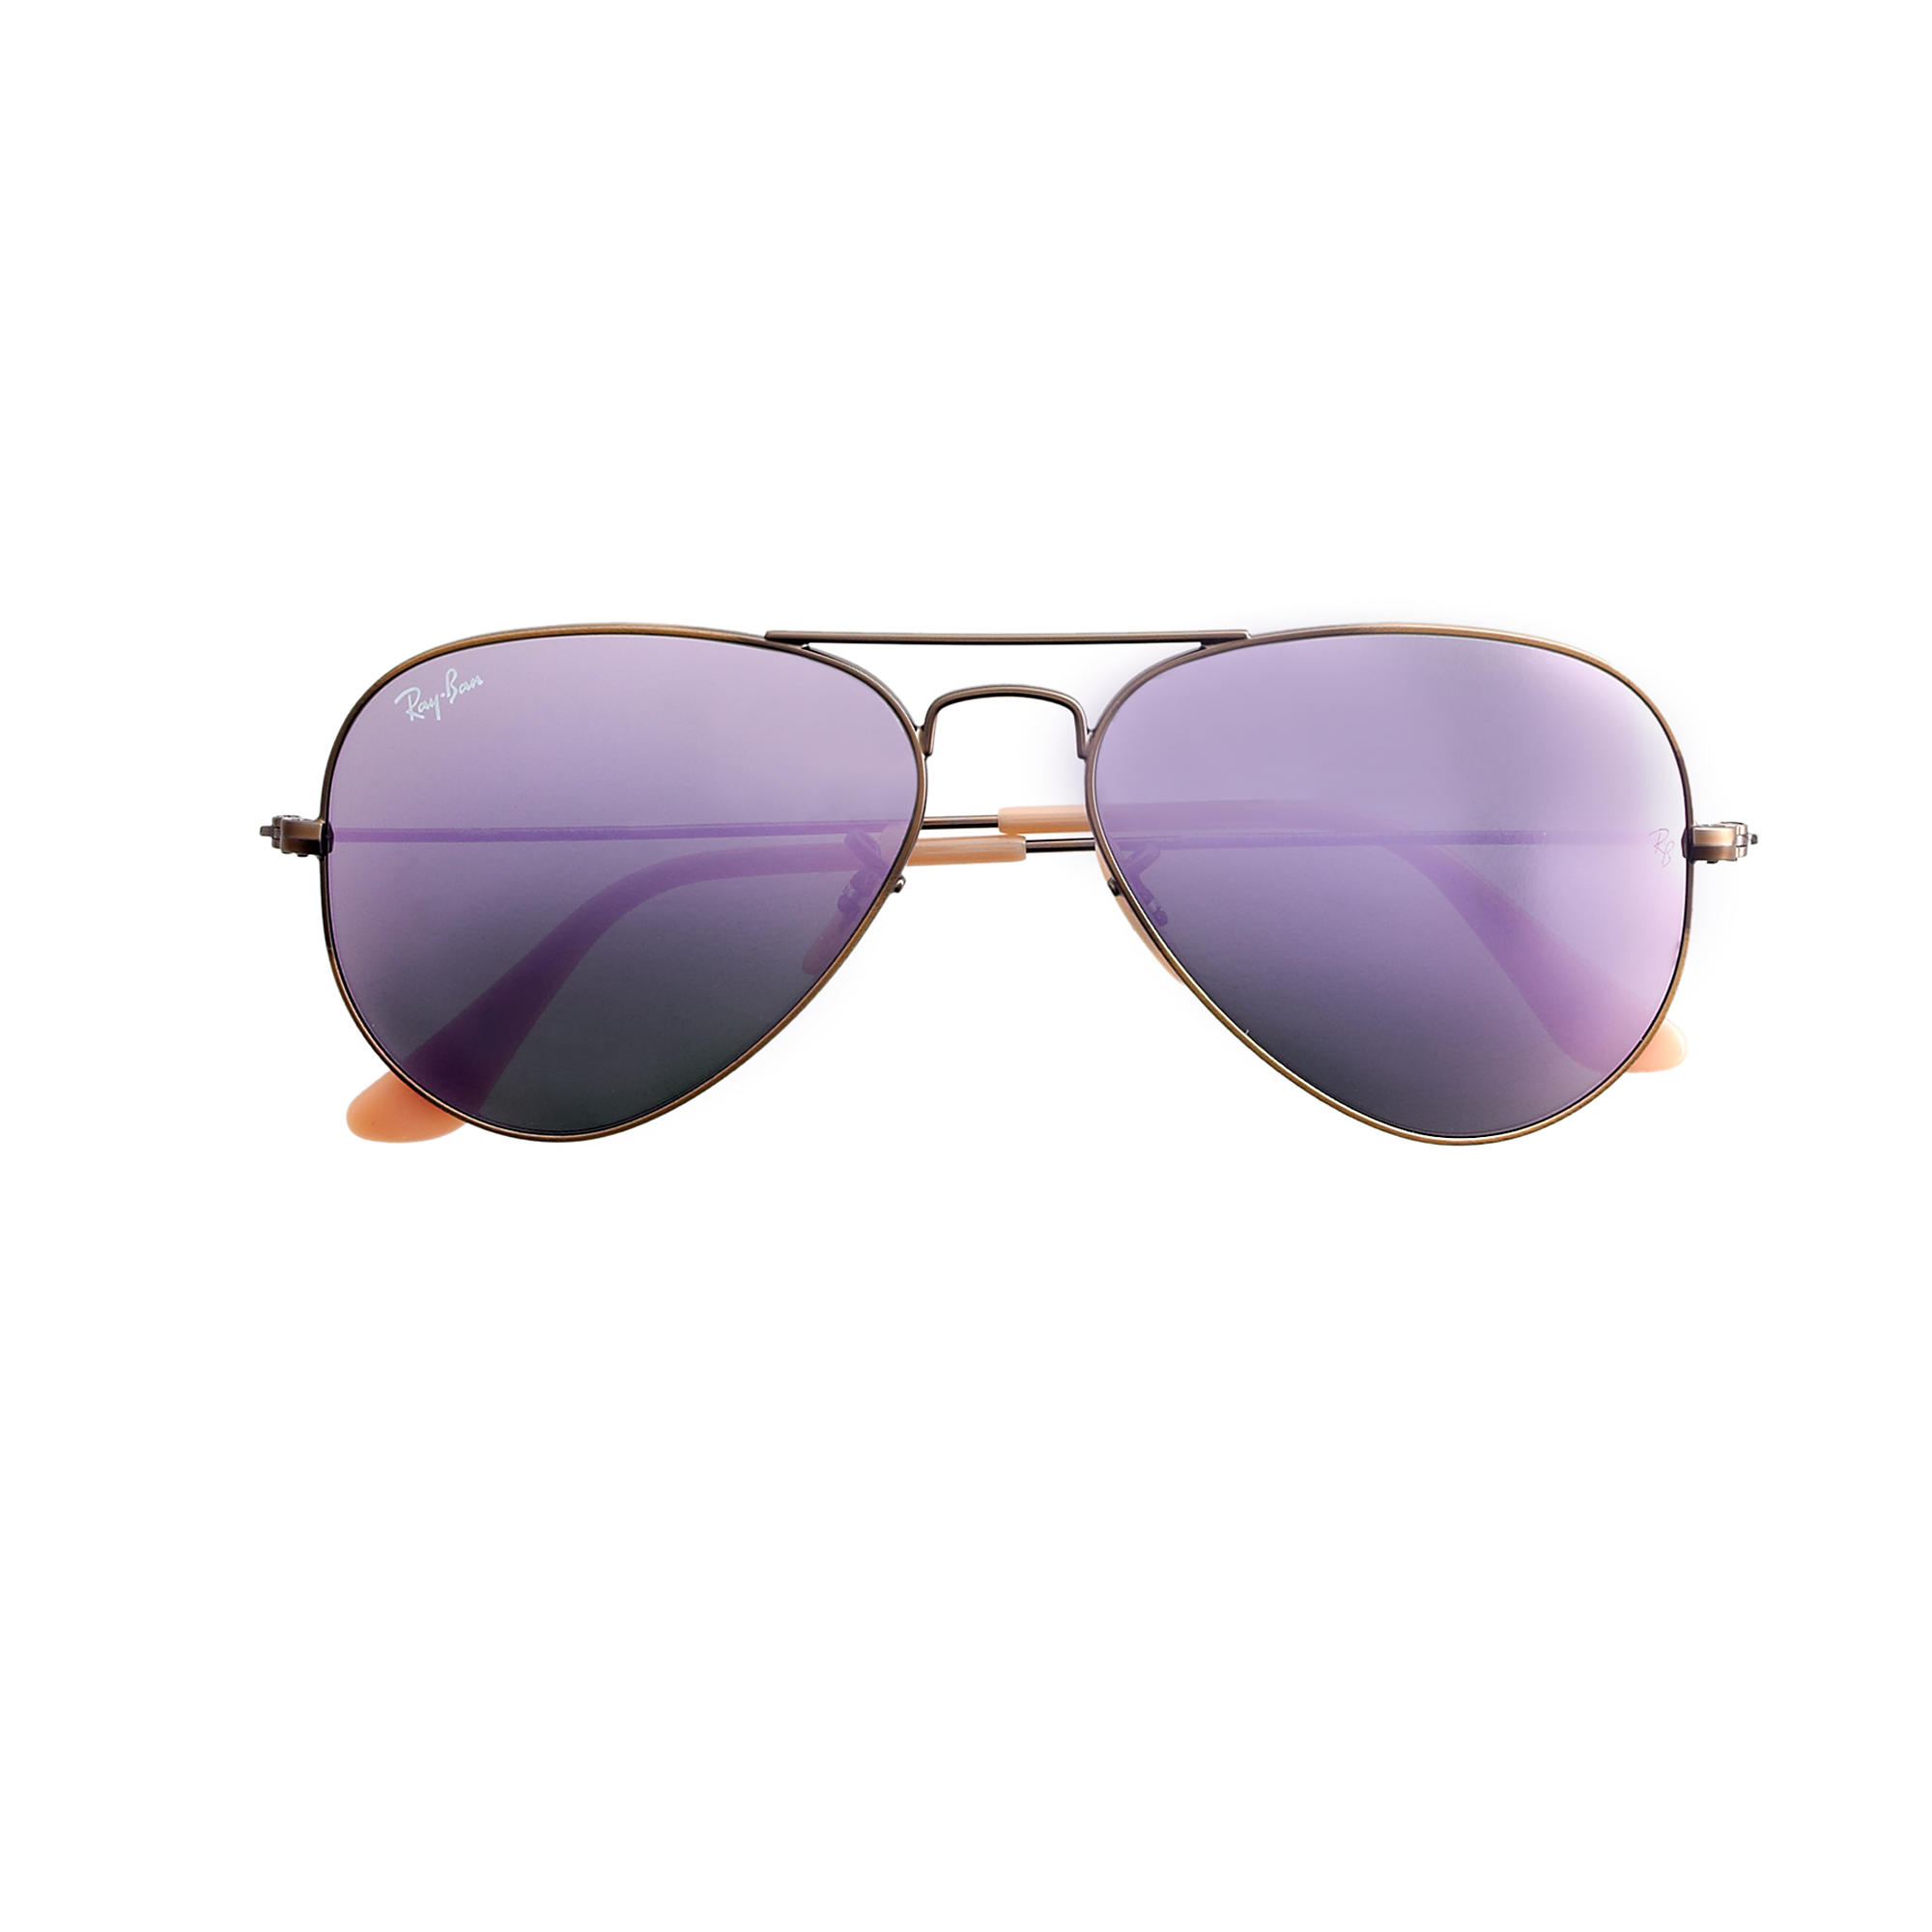 f3ba98a2474 Purple Sunglasses Ray Ban « Heritage Malta